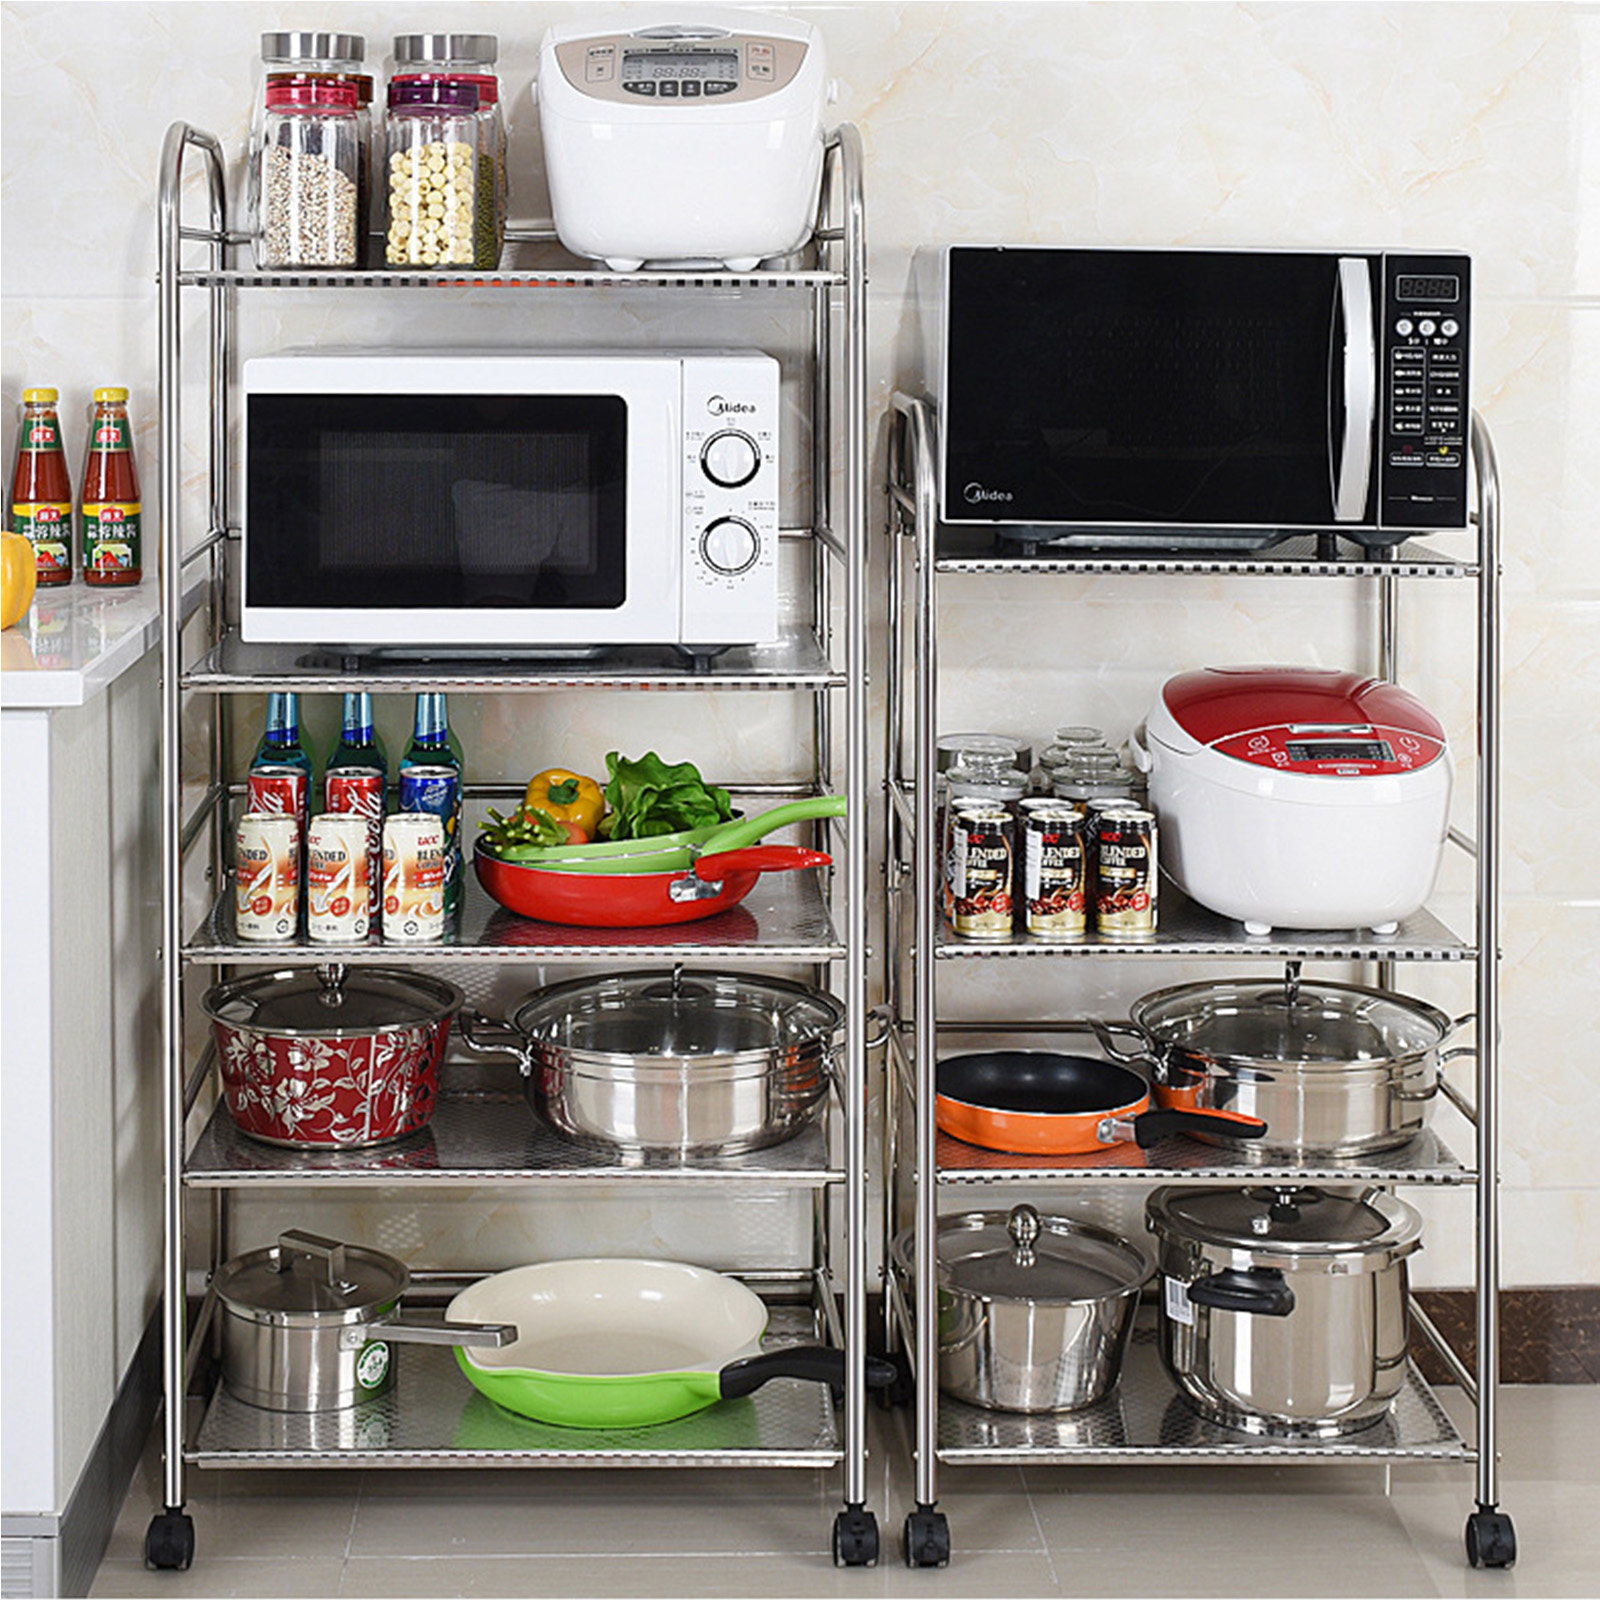 1/2/3/4 Tier Kitchen Baker's Microwave Oven Stand Storage Cart ... on kitchen pot racks, kitchen sink racks, kitchen slide out racks, kitchen pantry racks, kitchen pan storage racks,